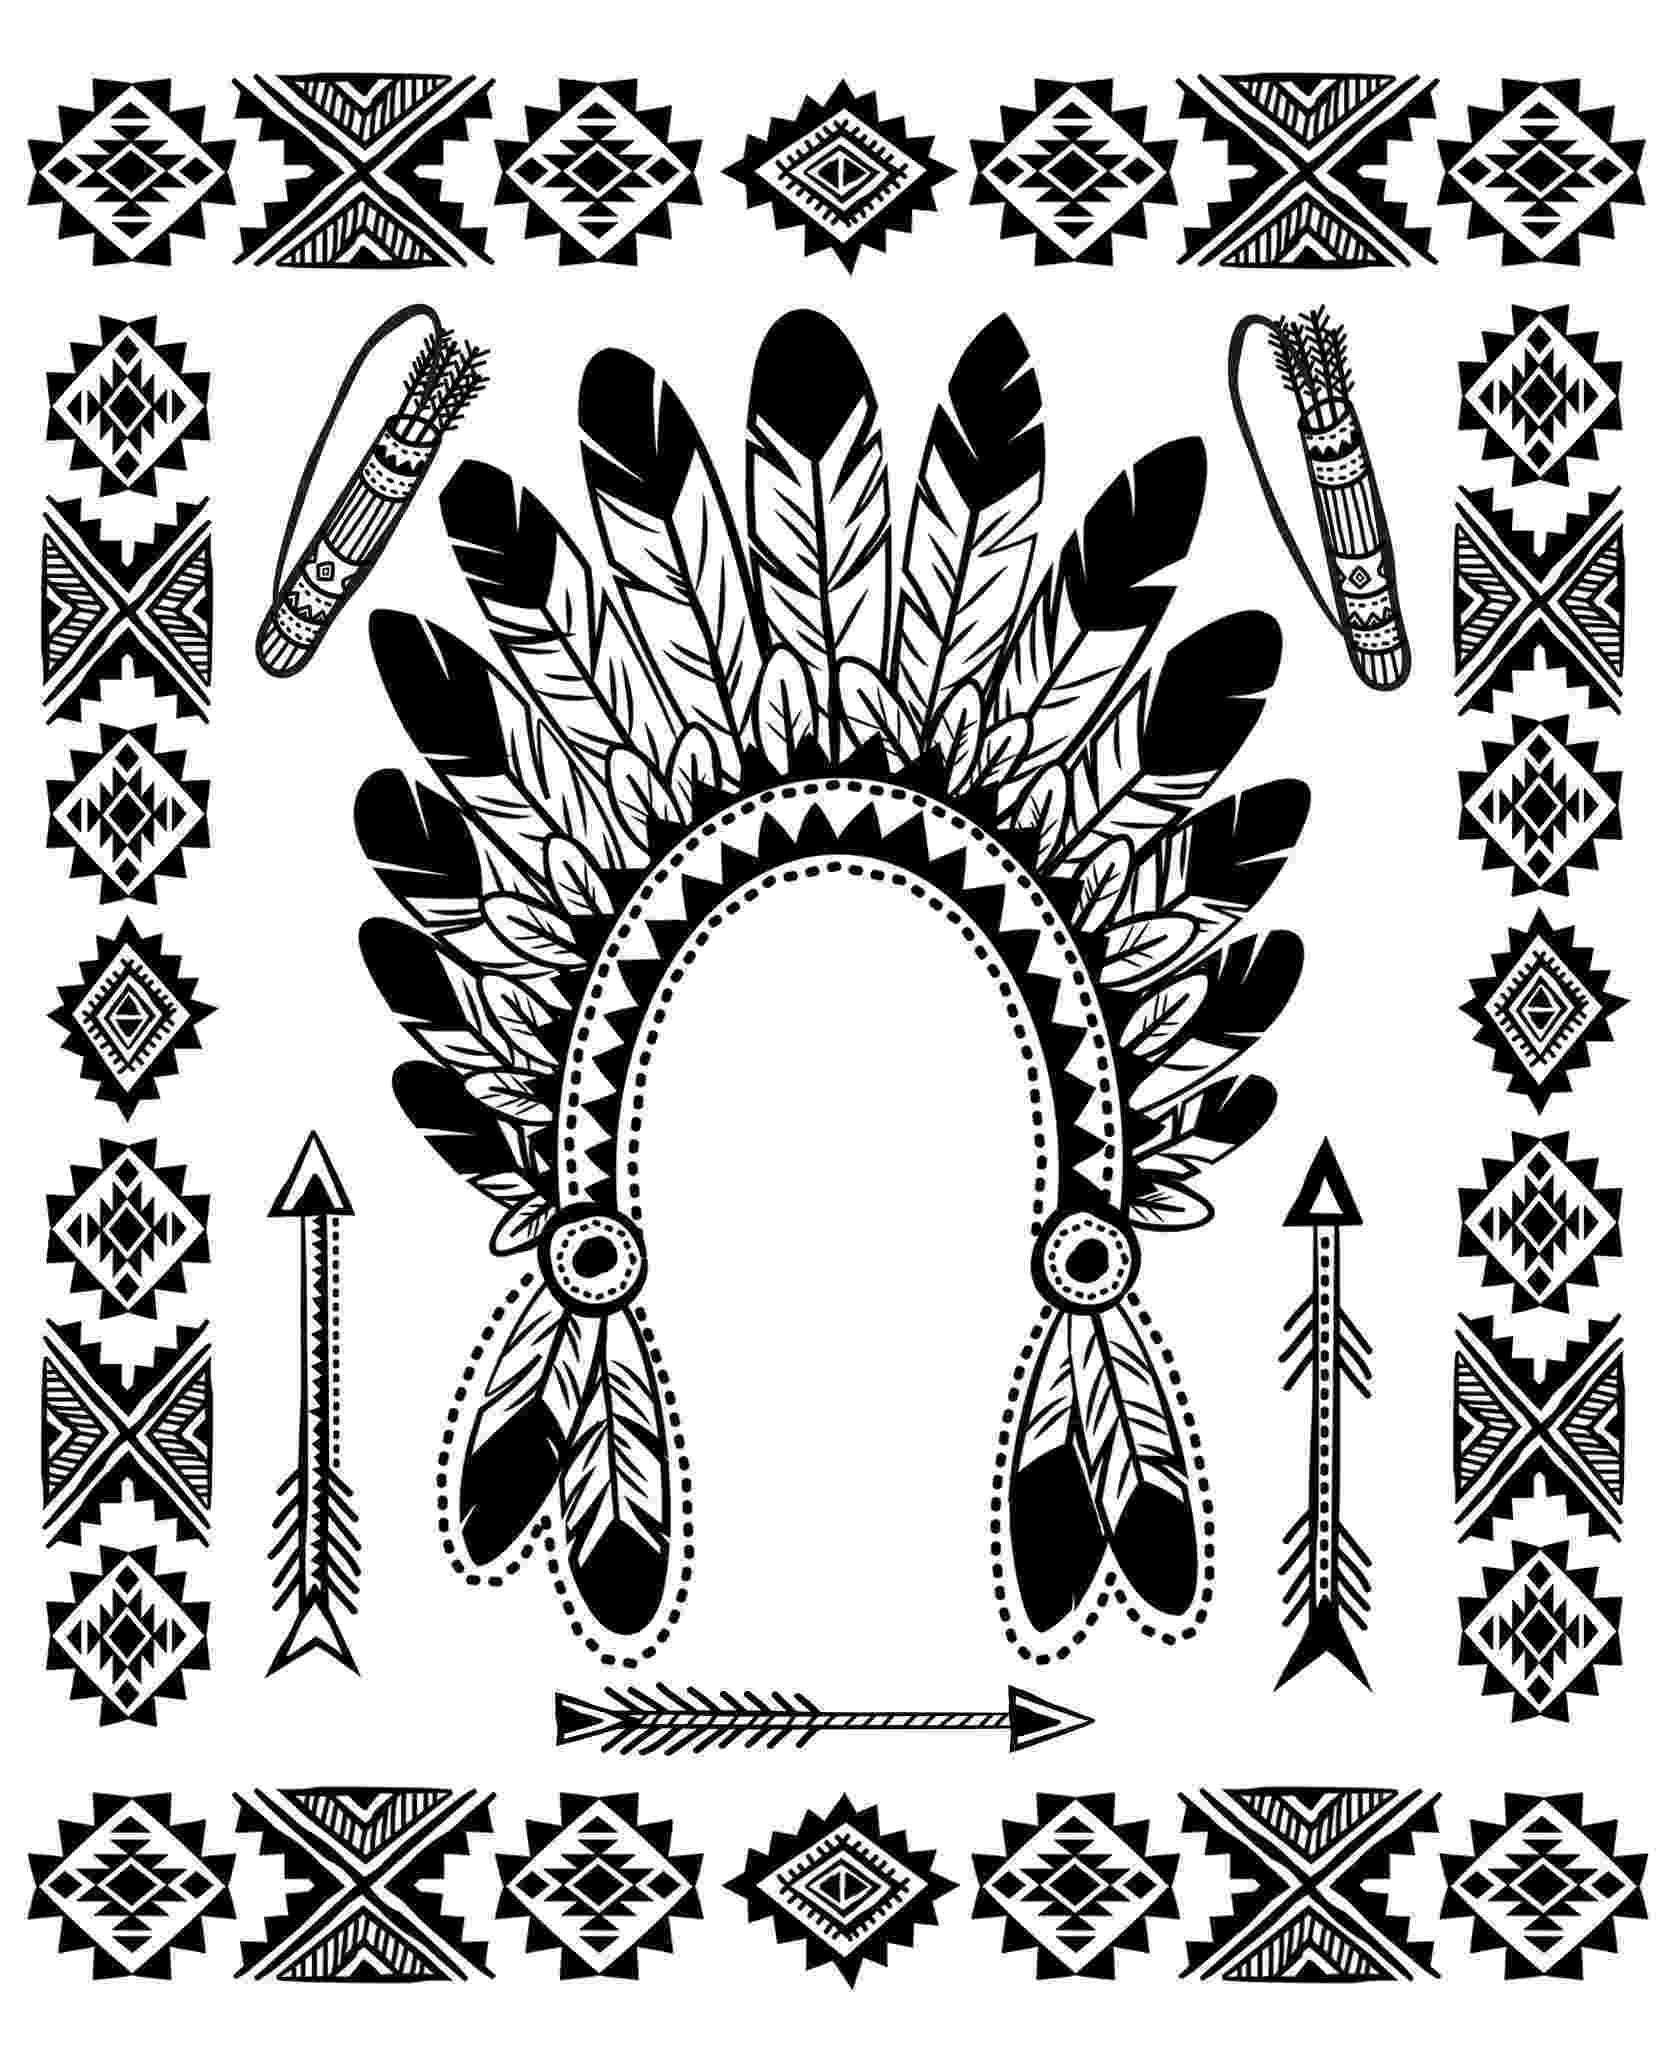 native american designs to color native american designs to color native american color designs to